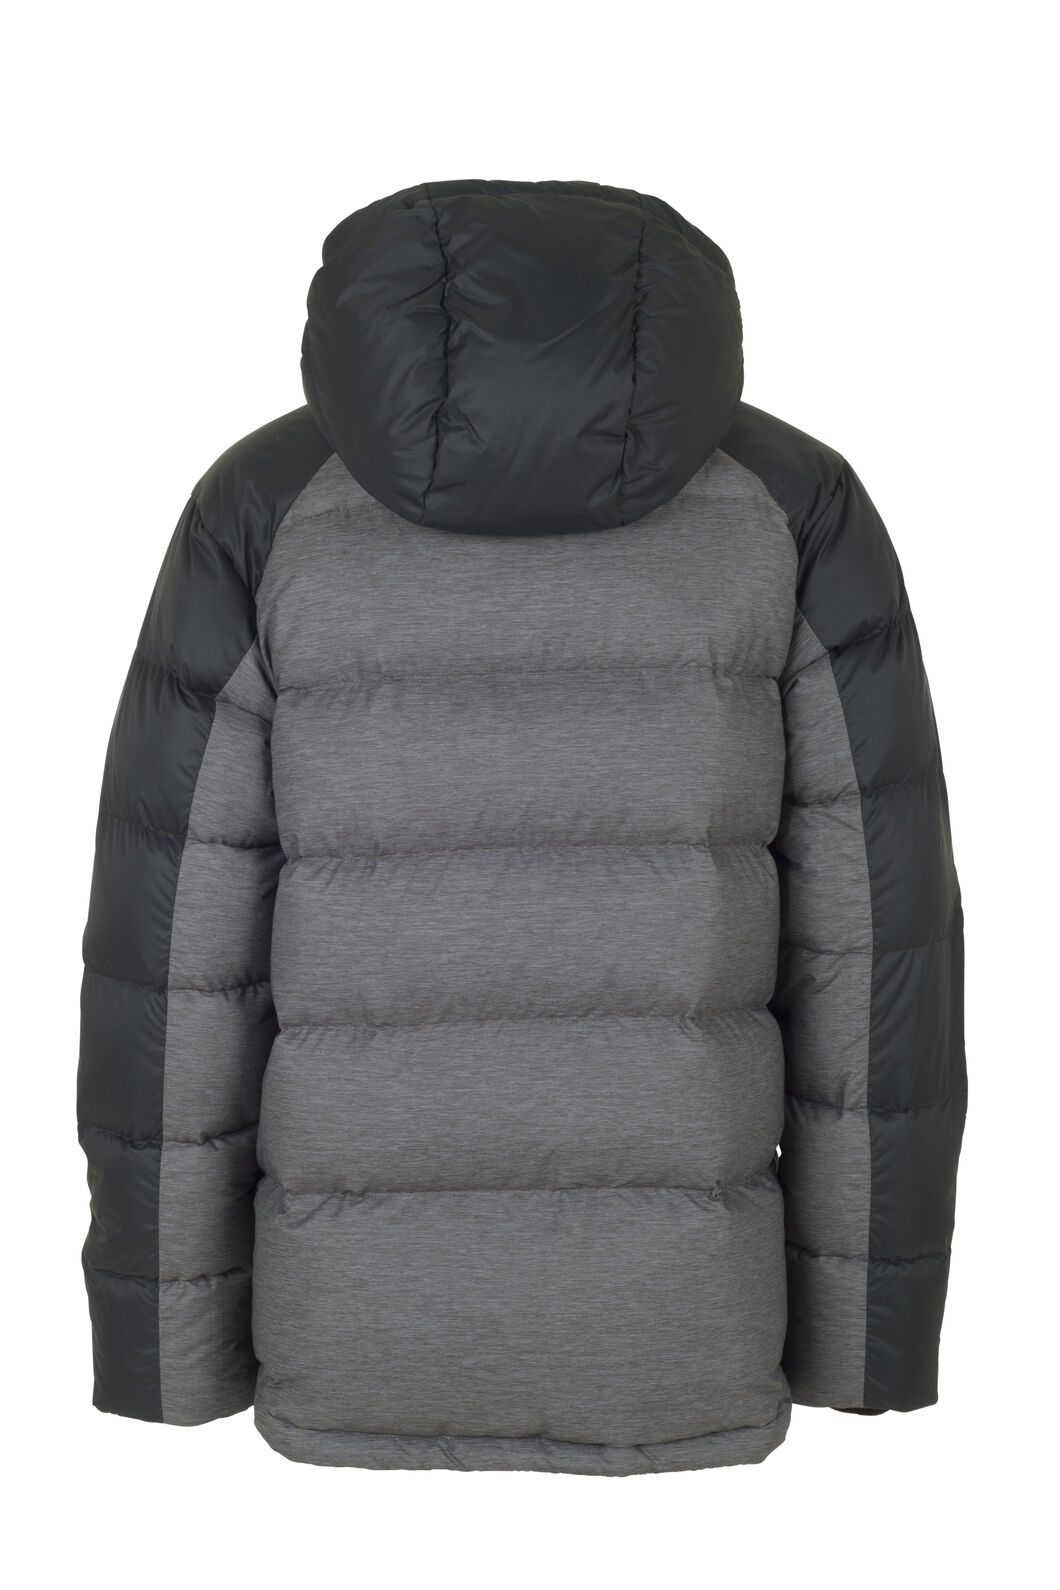 93b538c2189c Images. Macpac Asteroid Jacket - Kids  ...